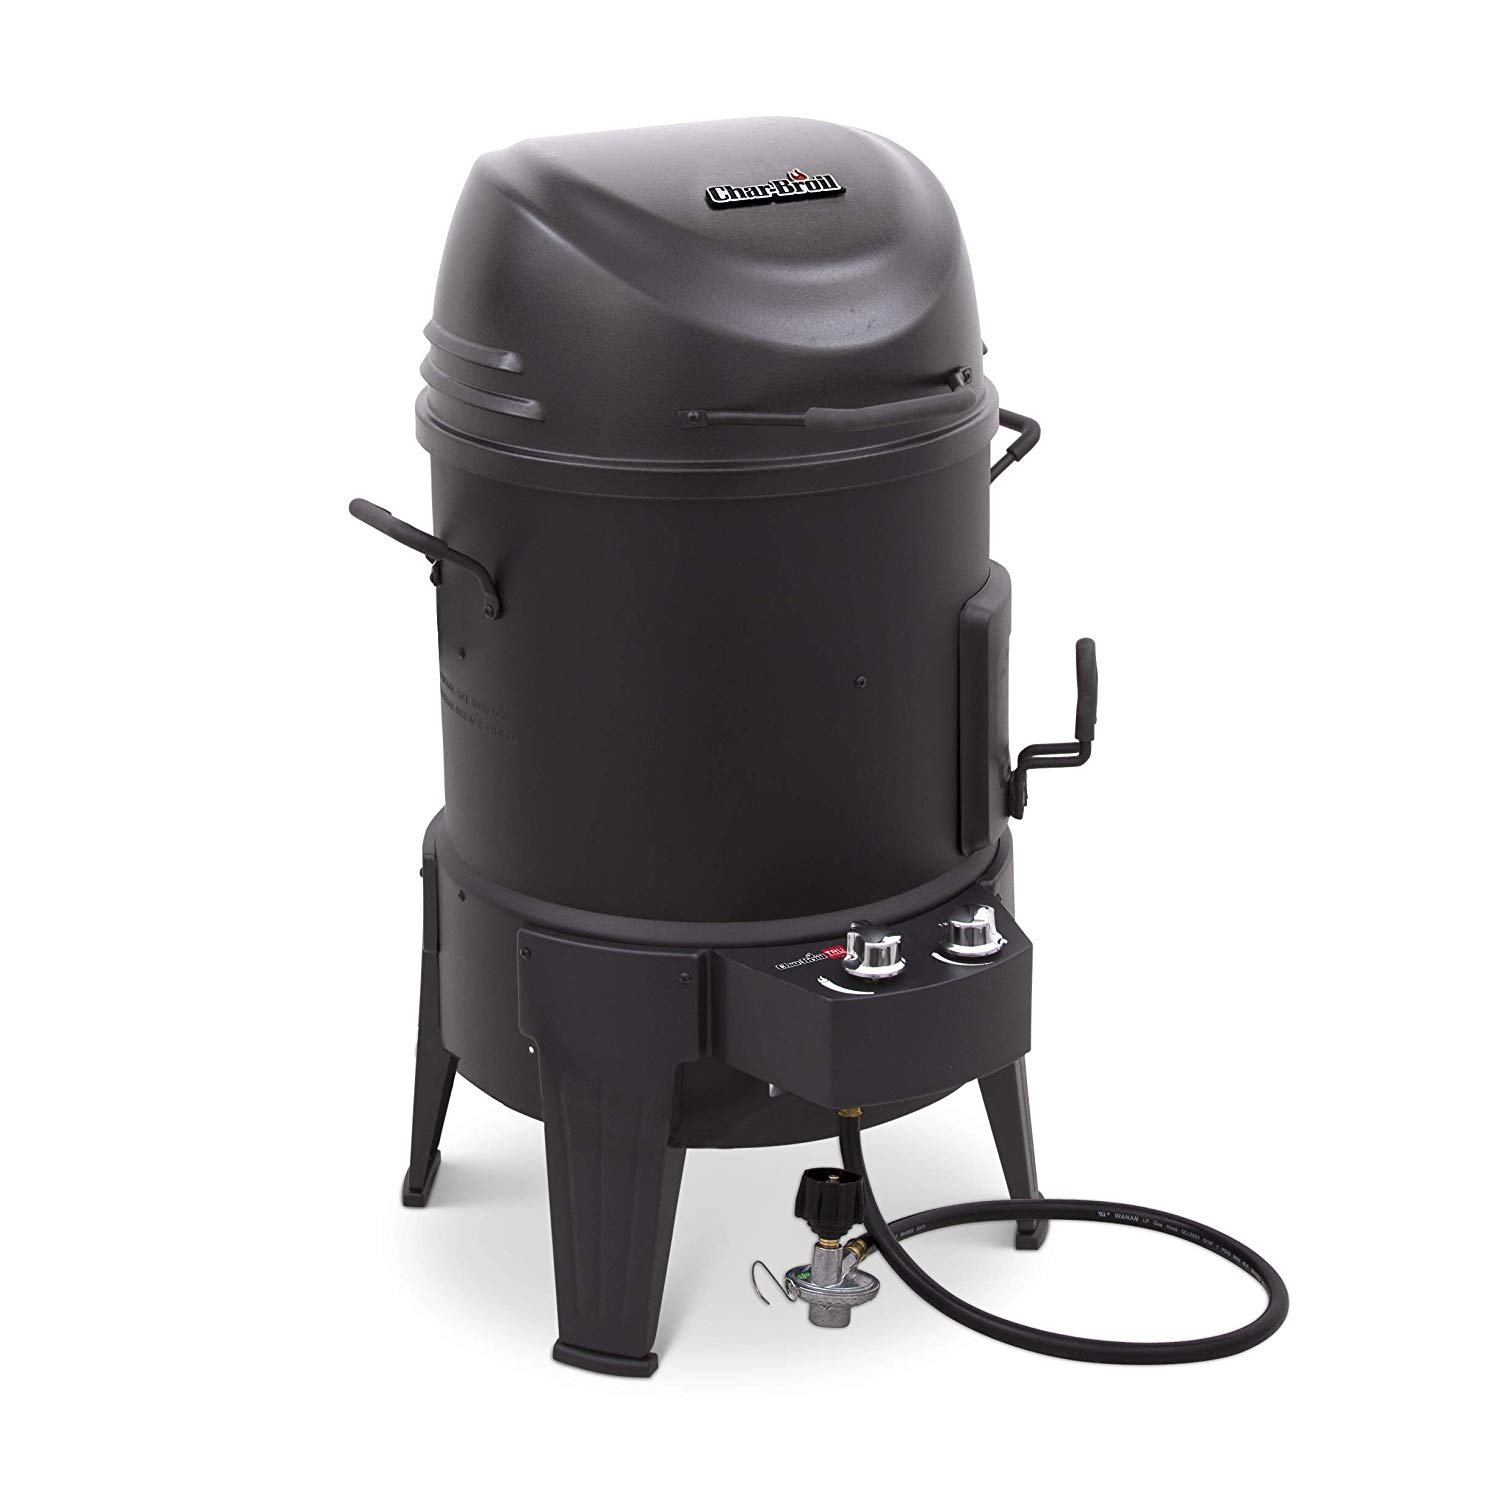 Char-Broil The Big Easy 14101550